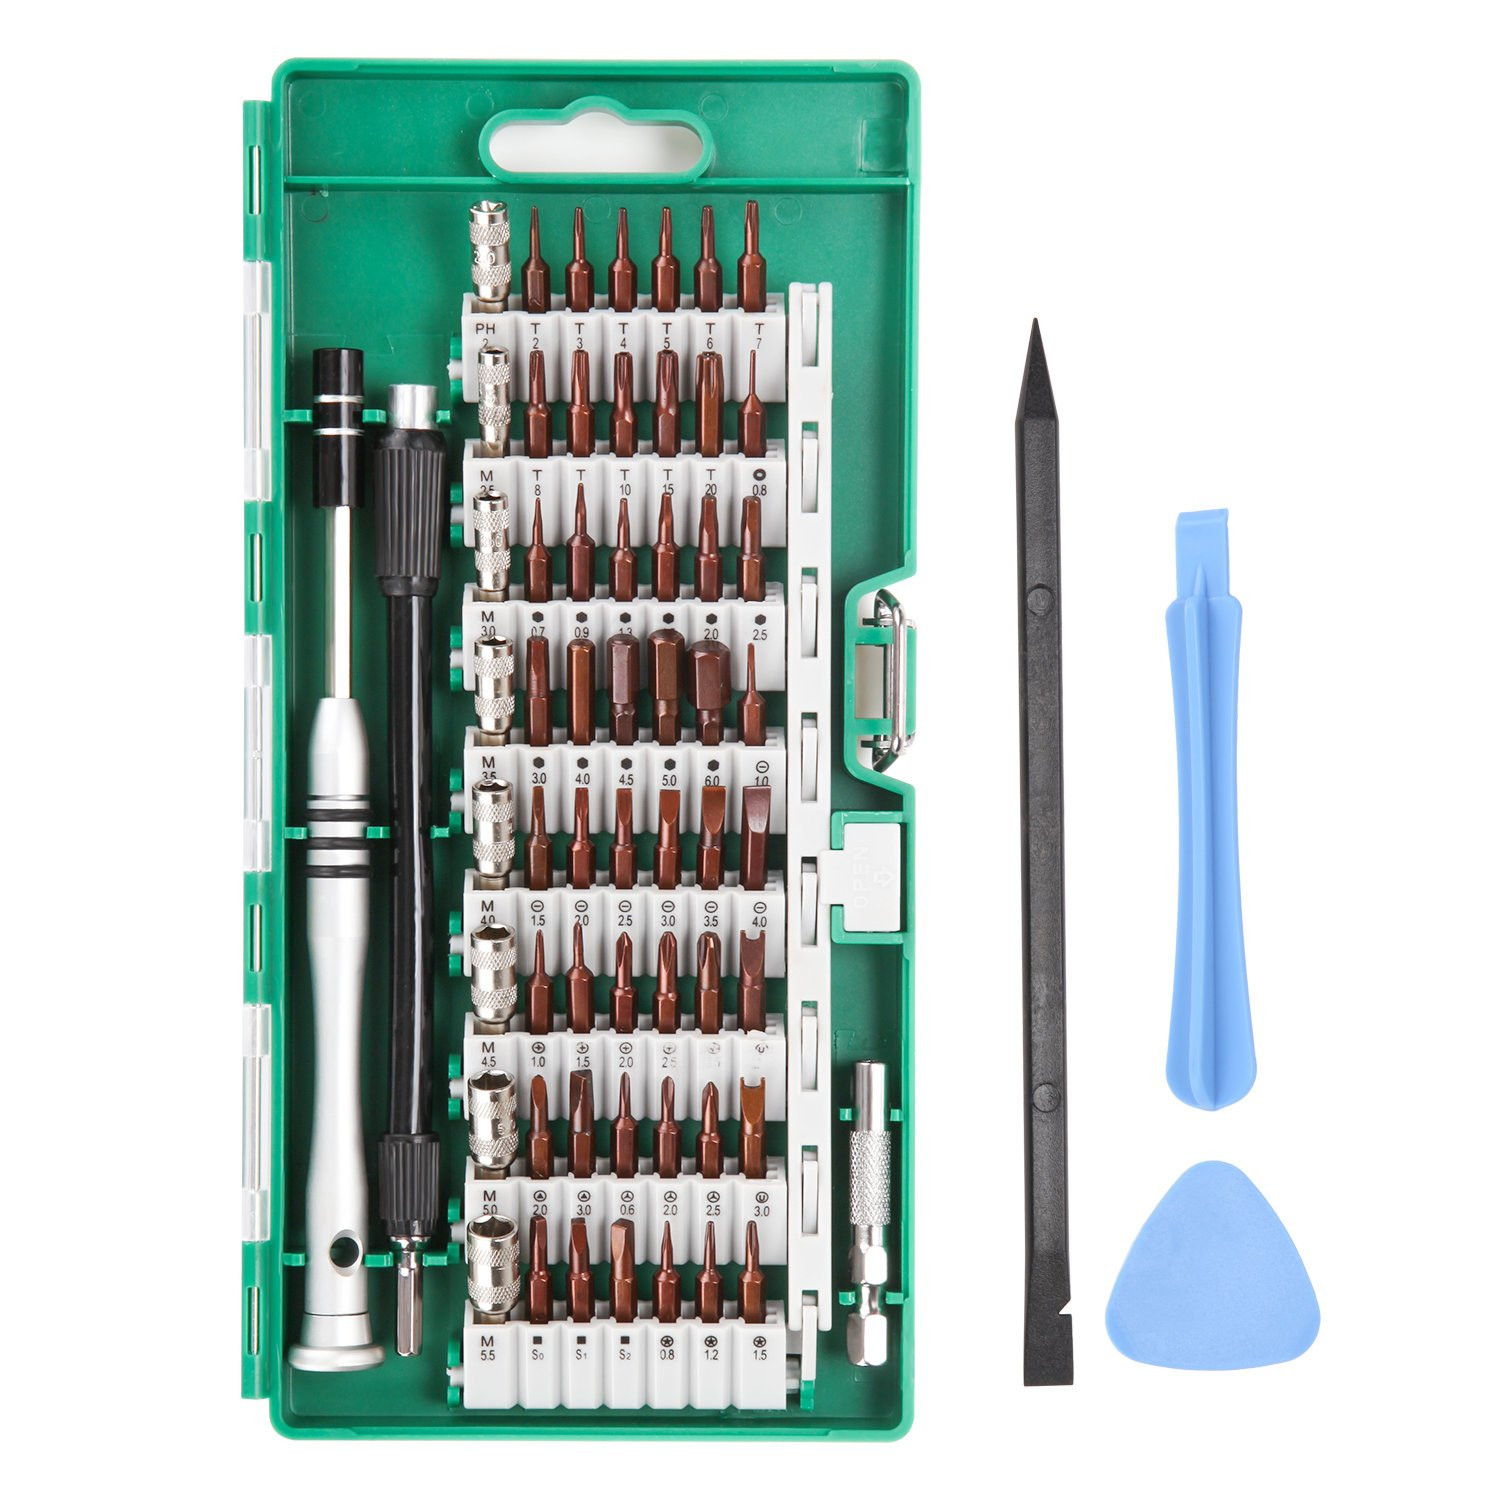 UFire 63 in 1 Precision Screwdriver Set with 56 Bit Magnetic Screwdriver Kit Electronics Repair Tool Kit for iPhone, Tablet, Macbook, Xbox, Cellphone, PC, Game Console - Green